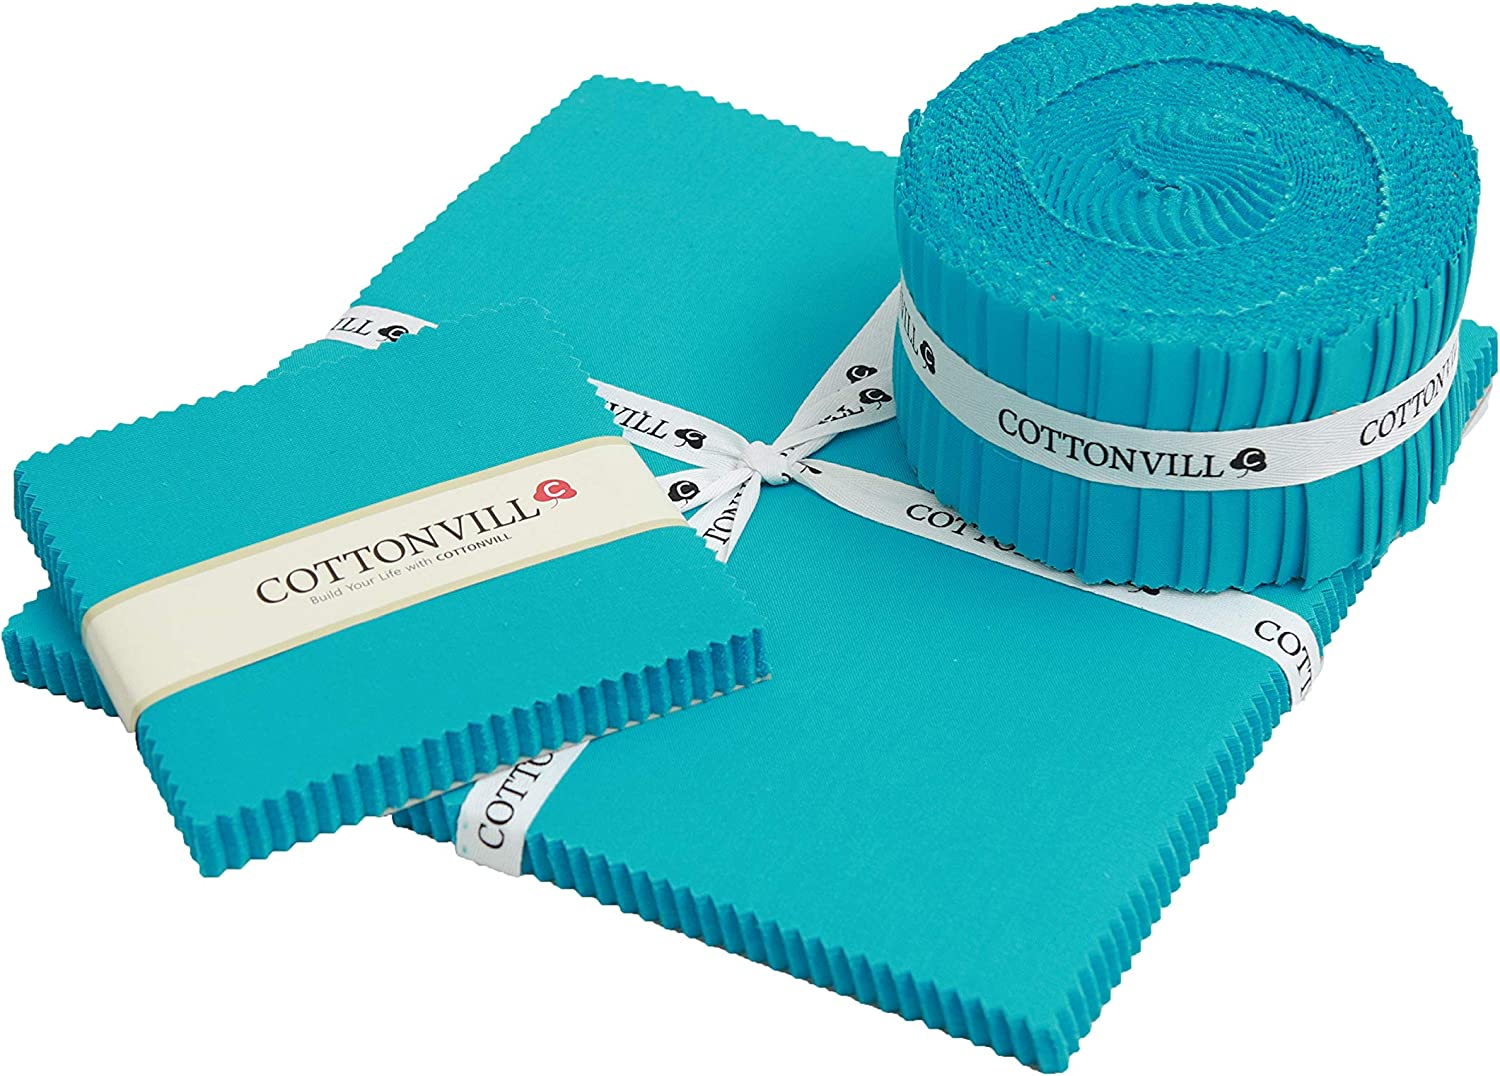 COTTONVILL 20COUNT Cotton Solid Quilting Fabric 10yard, 03-Whisper White